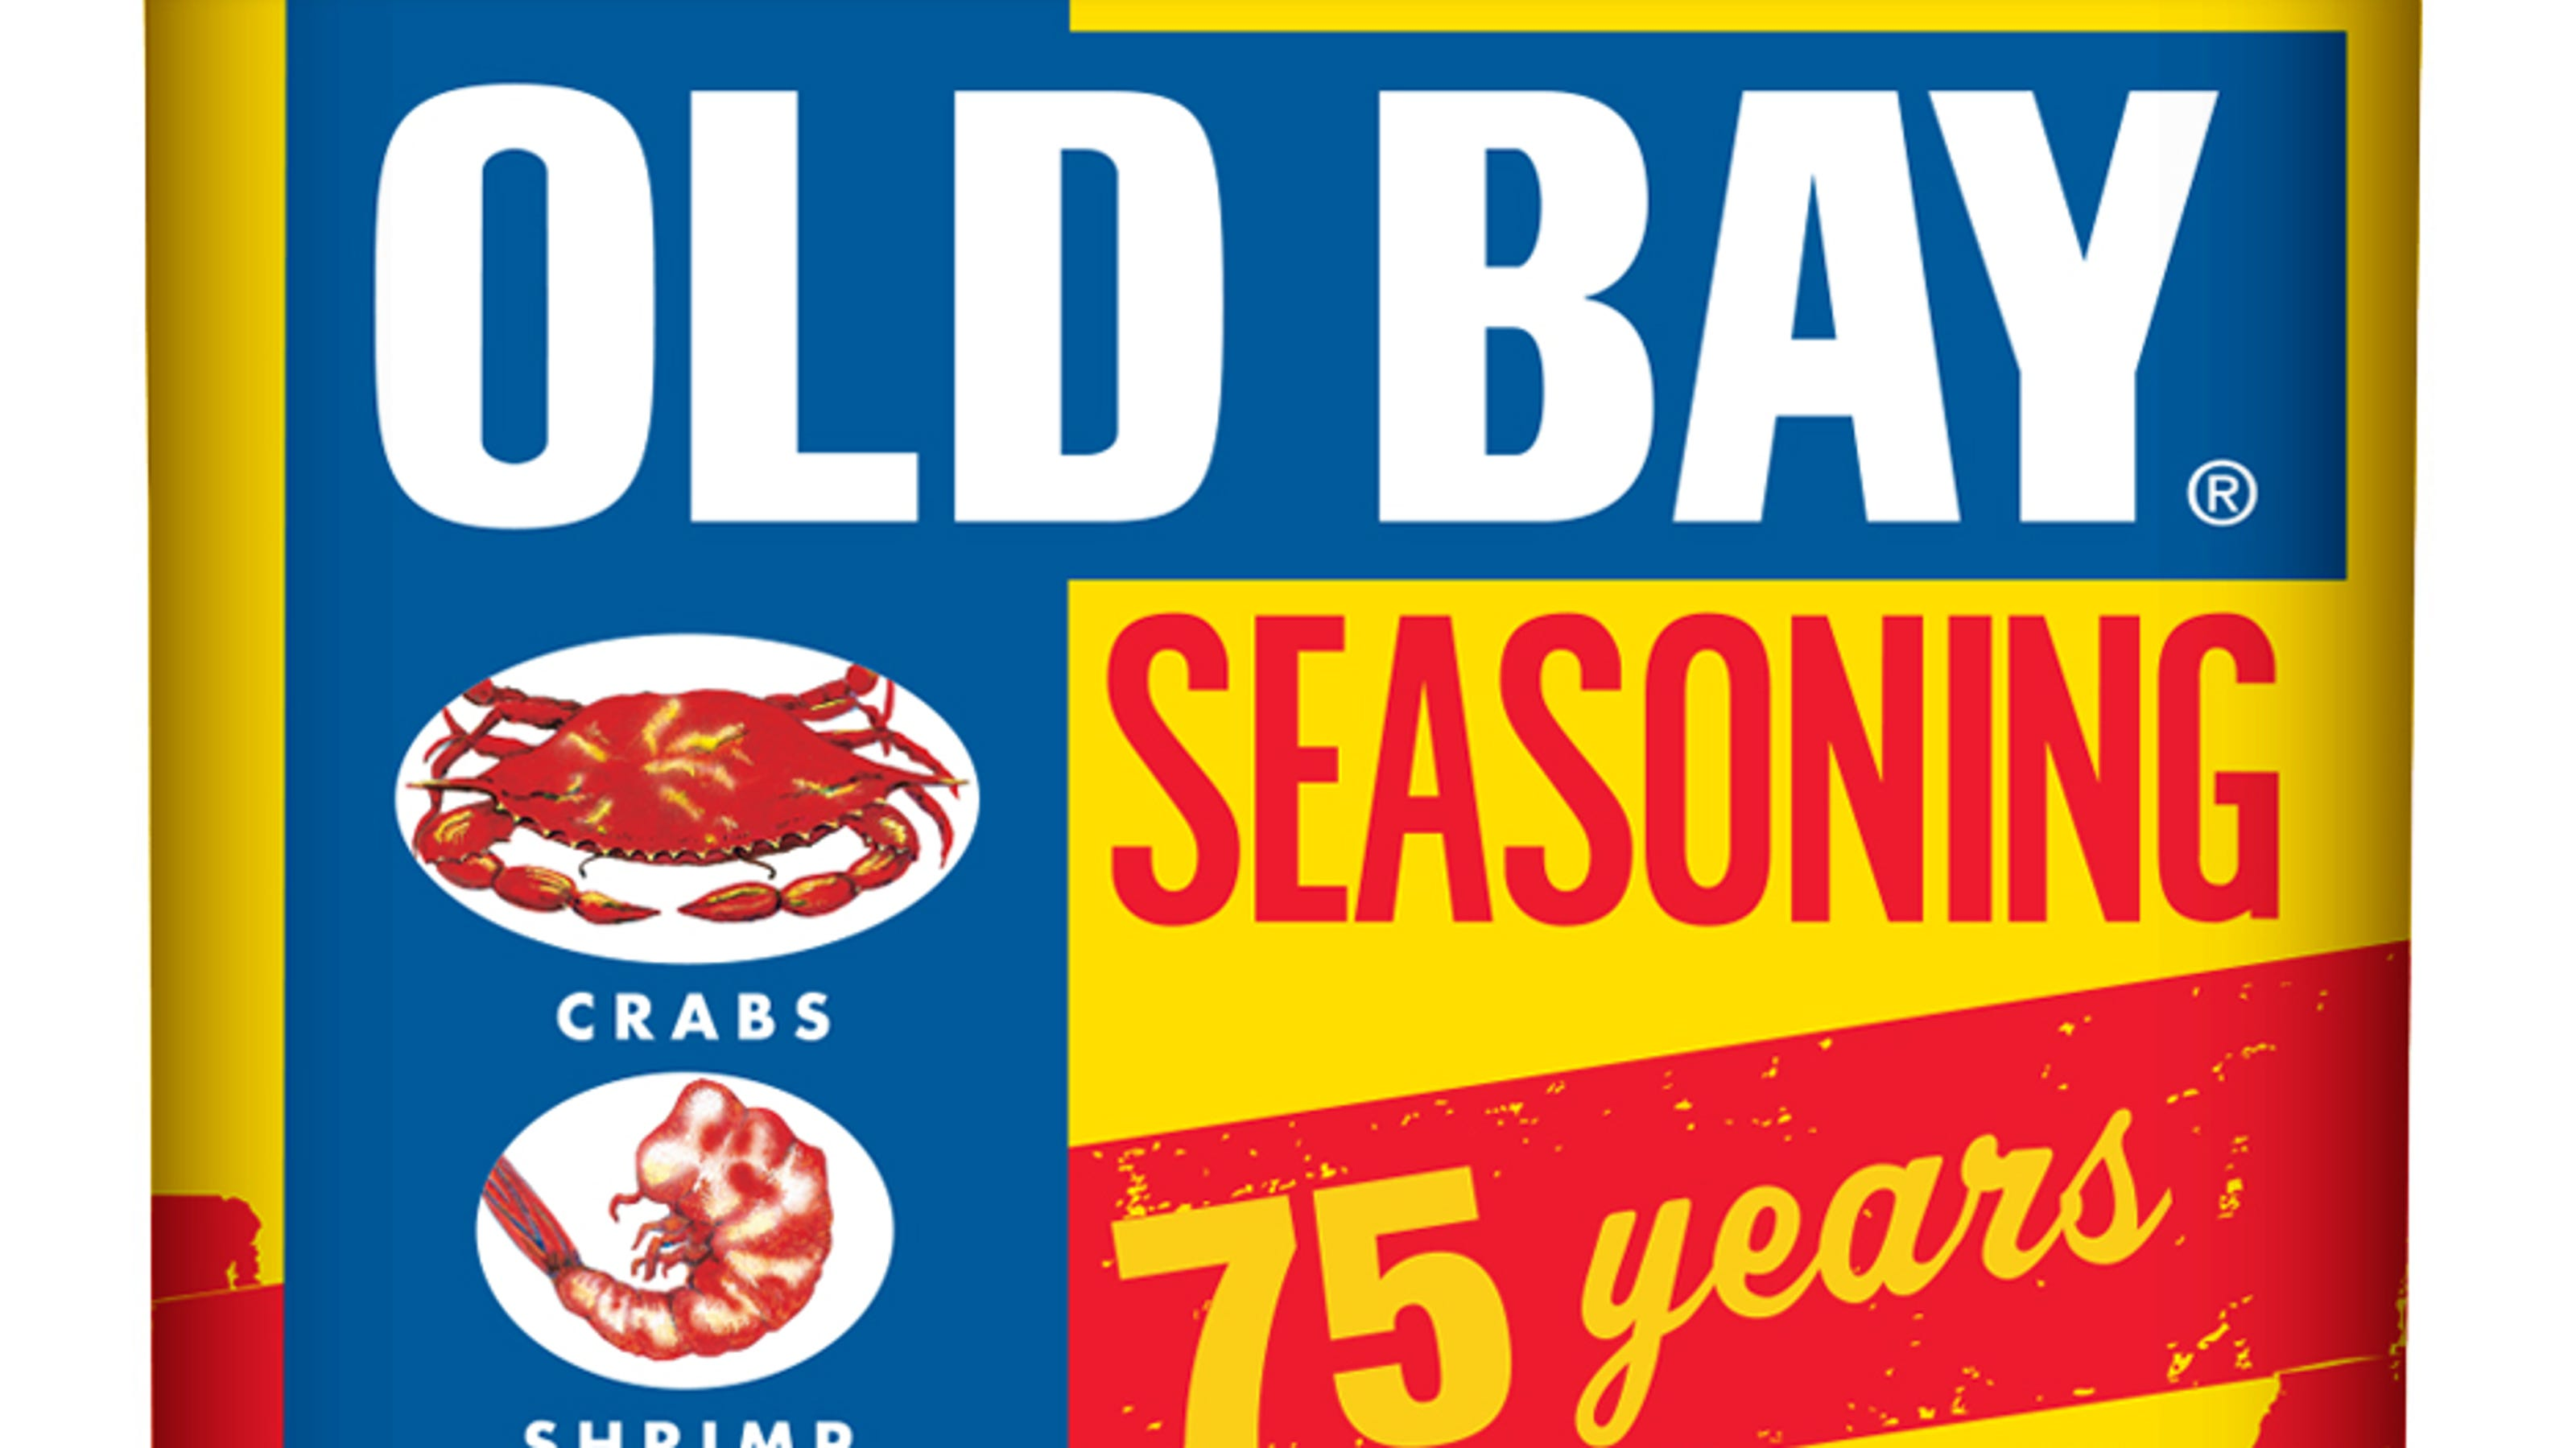 Old Bay sues to protect its trademark